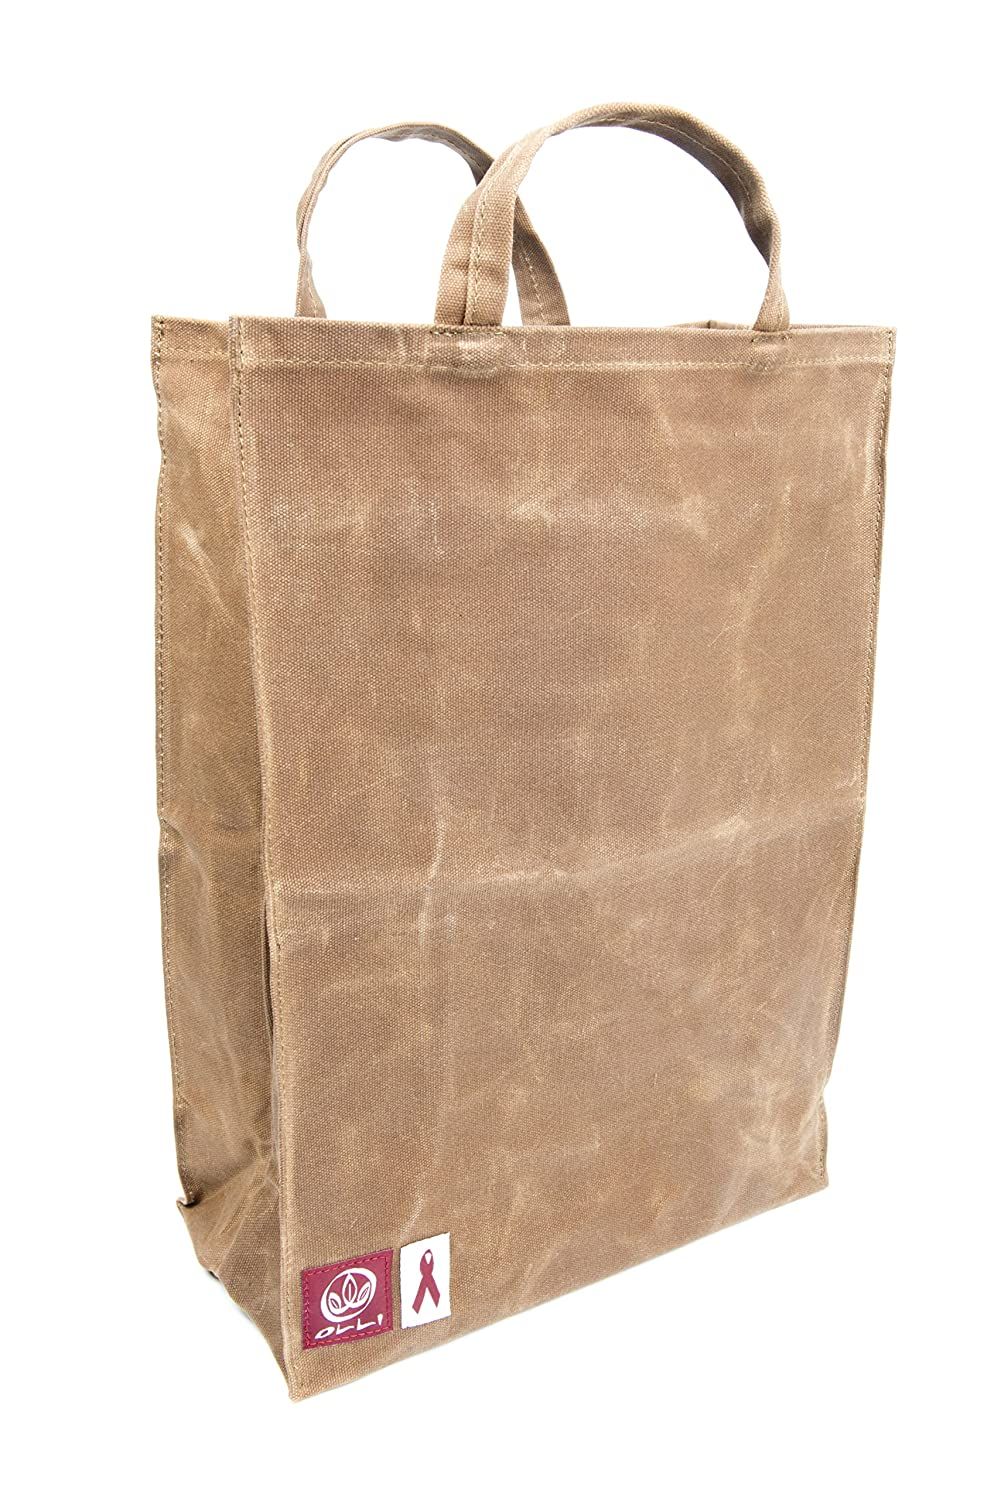 8831ae1c7901 Olli Reusable Waxed Cotton Canvas Grocery Tote Bags - Organic and Vegan  Shopping Bags Brown